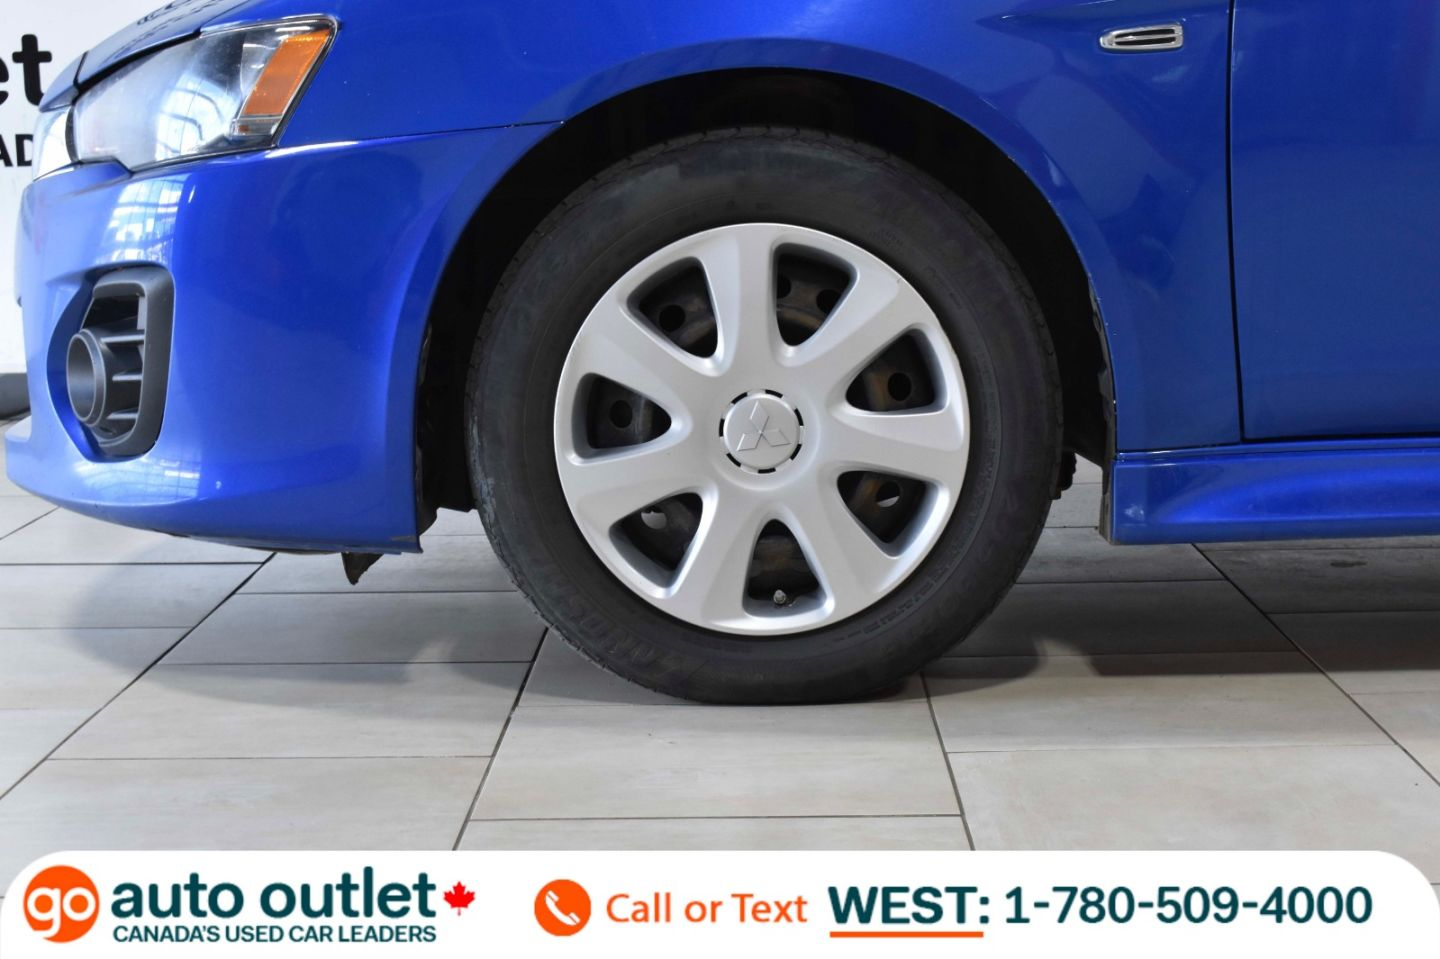 2016 Mitsubishi Lancer SE LTD for sale in Edmonton, Alberta